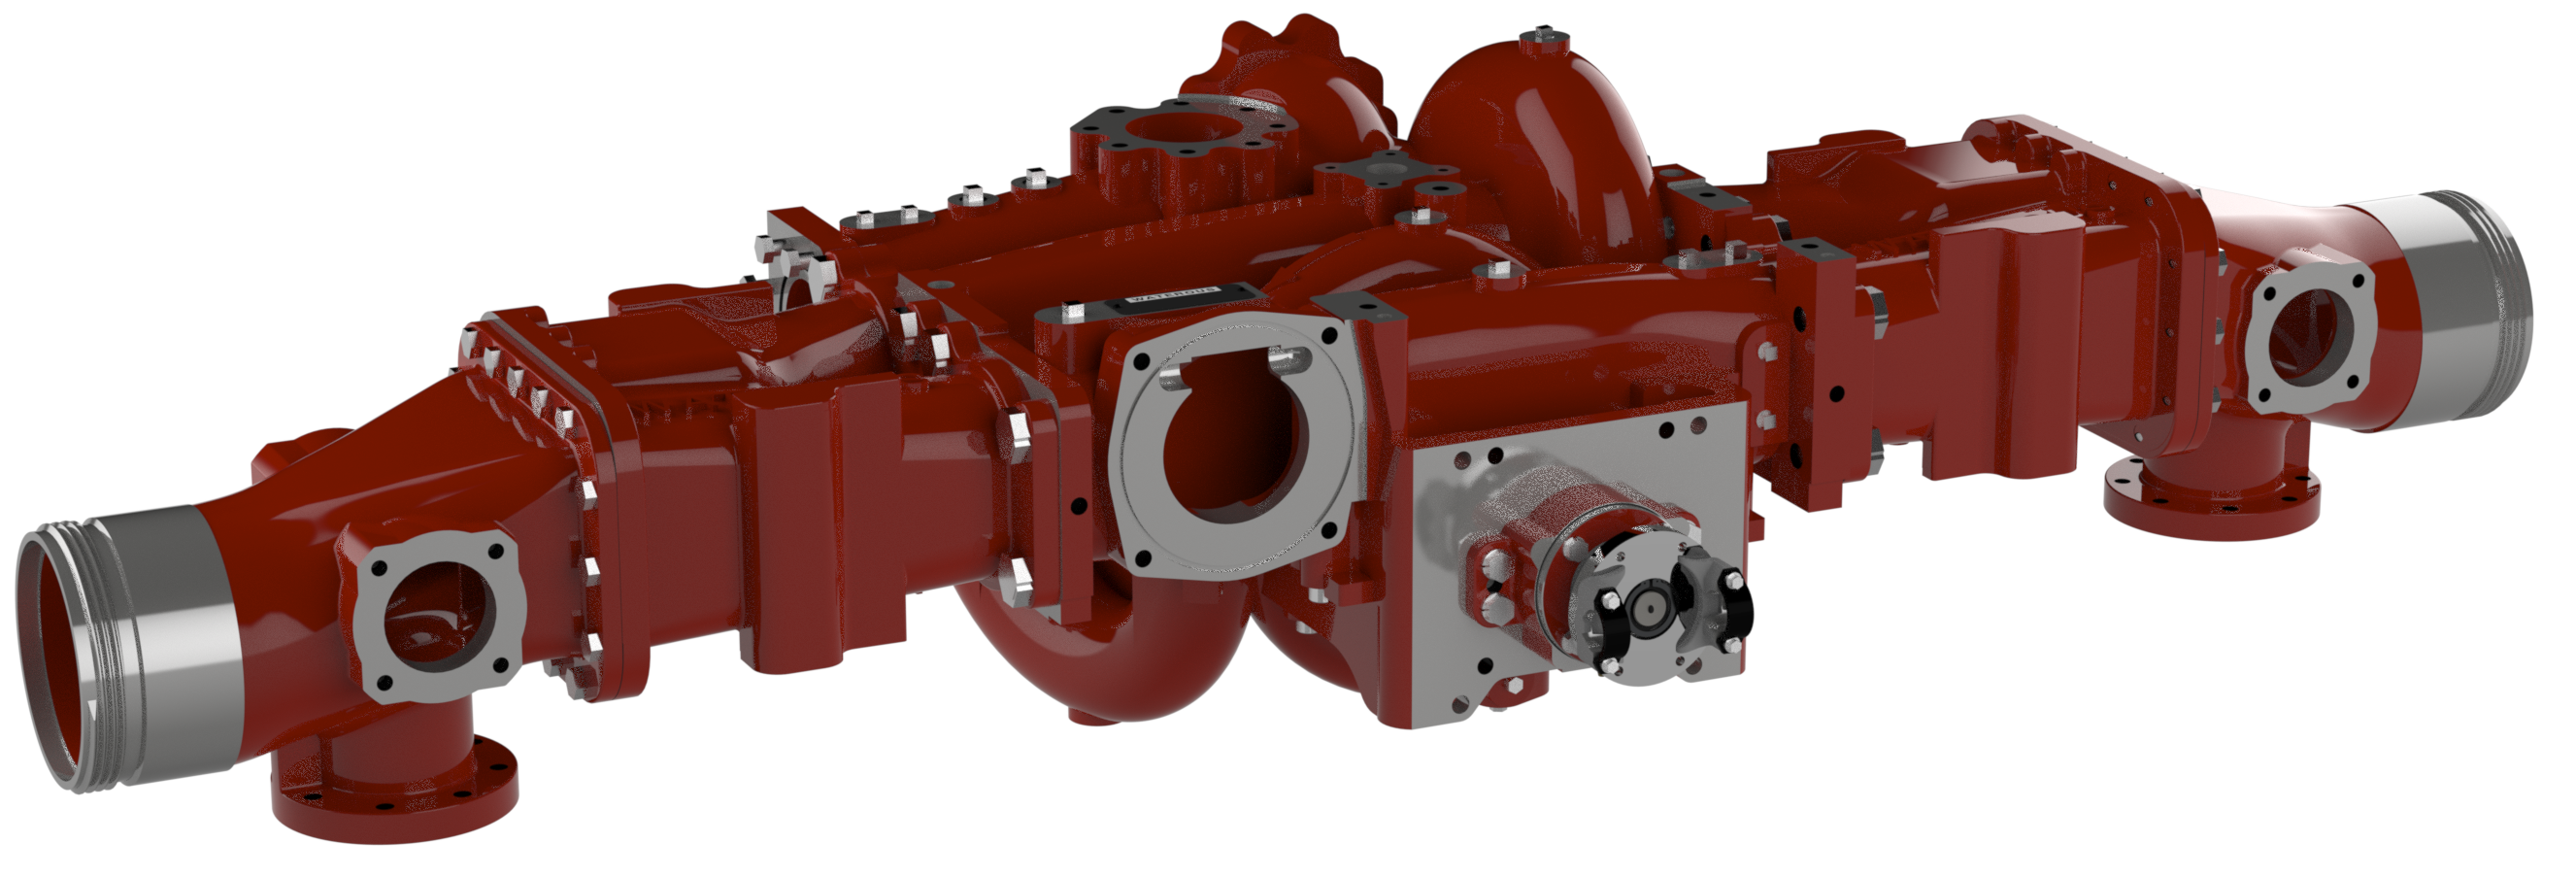 CSD / CSUD Single-Stage | Fire Pumps, Fire Suppression Equipment